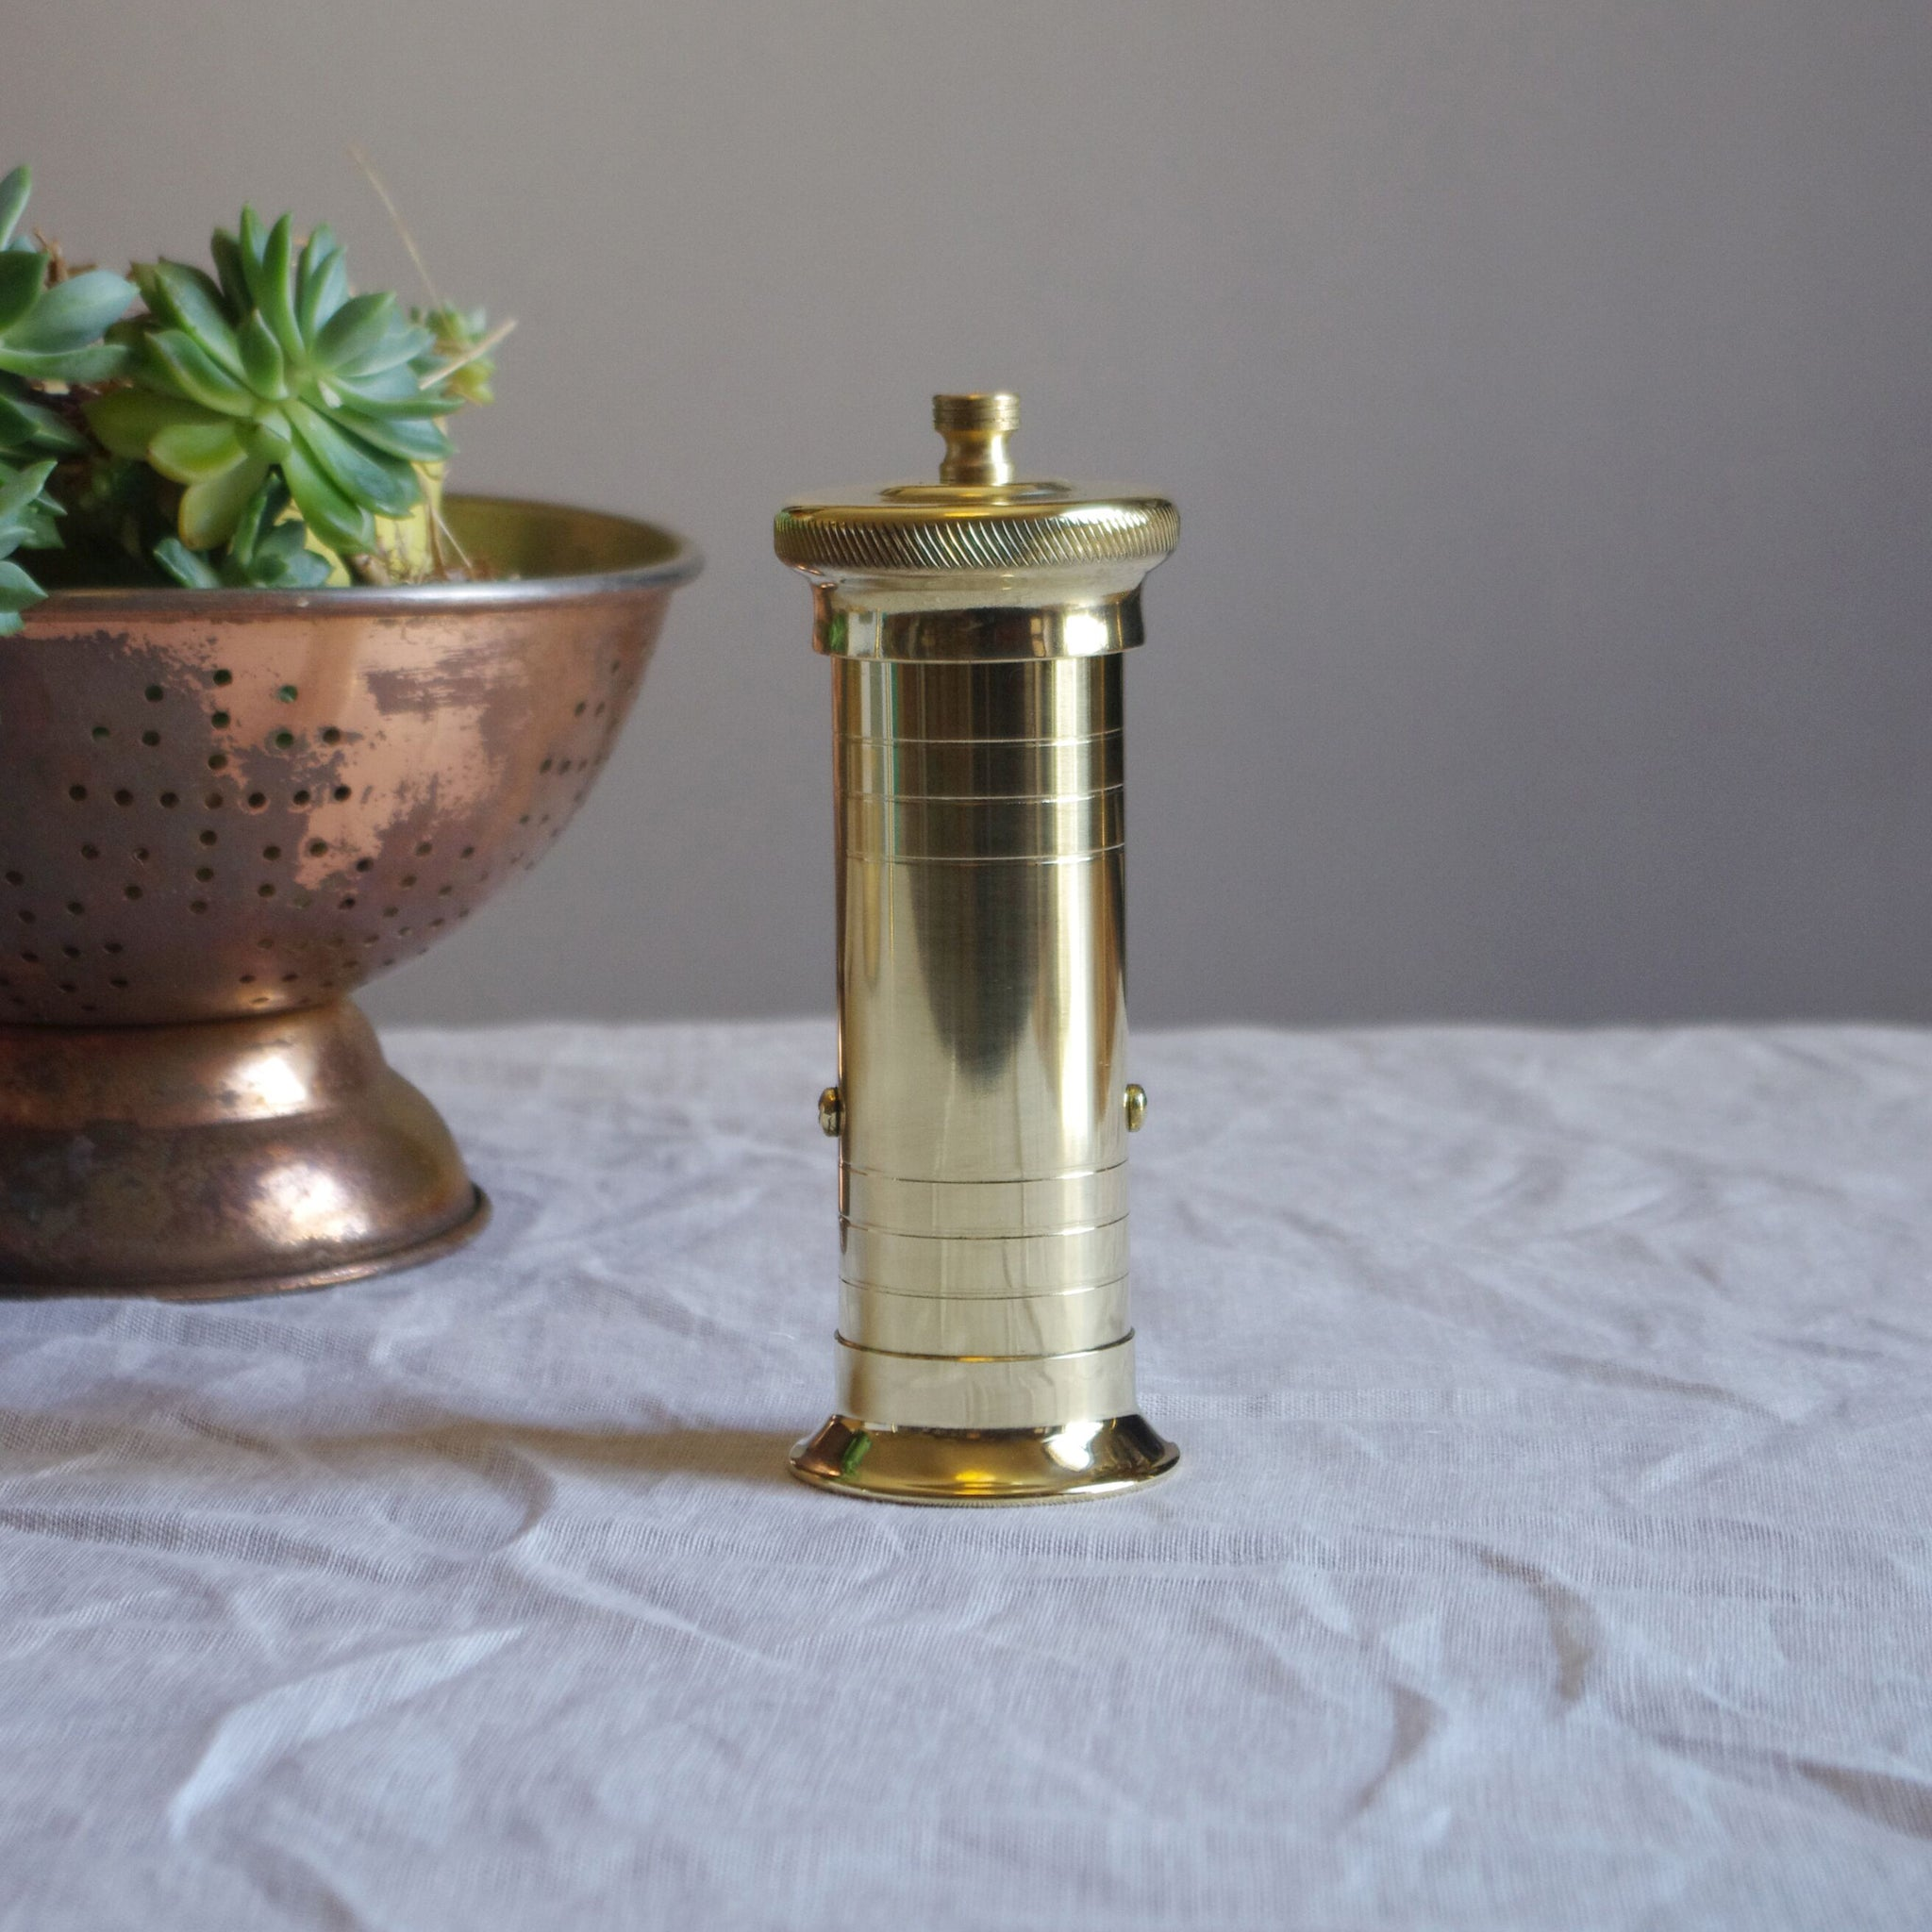 Chef's Brass Pepper Mill 502